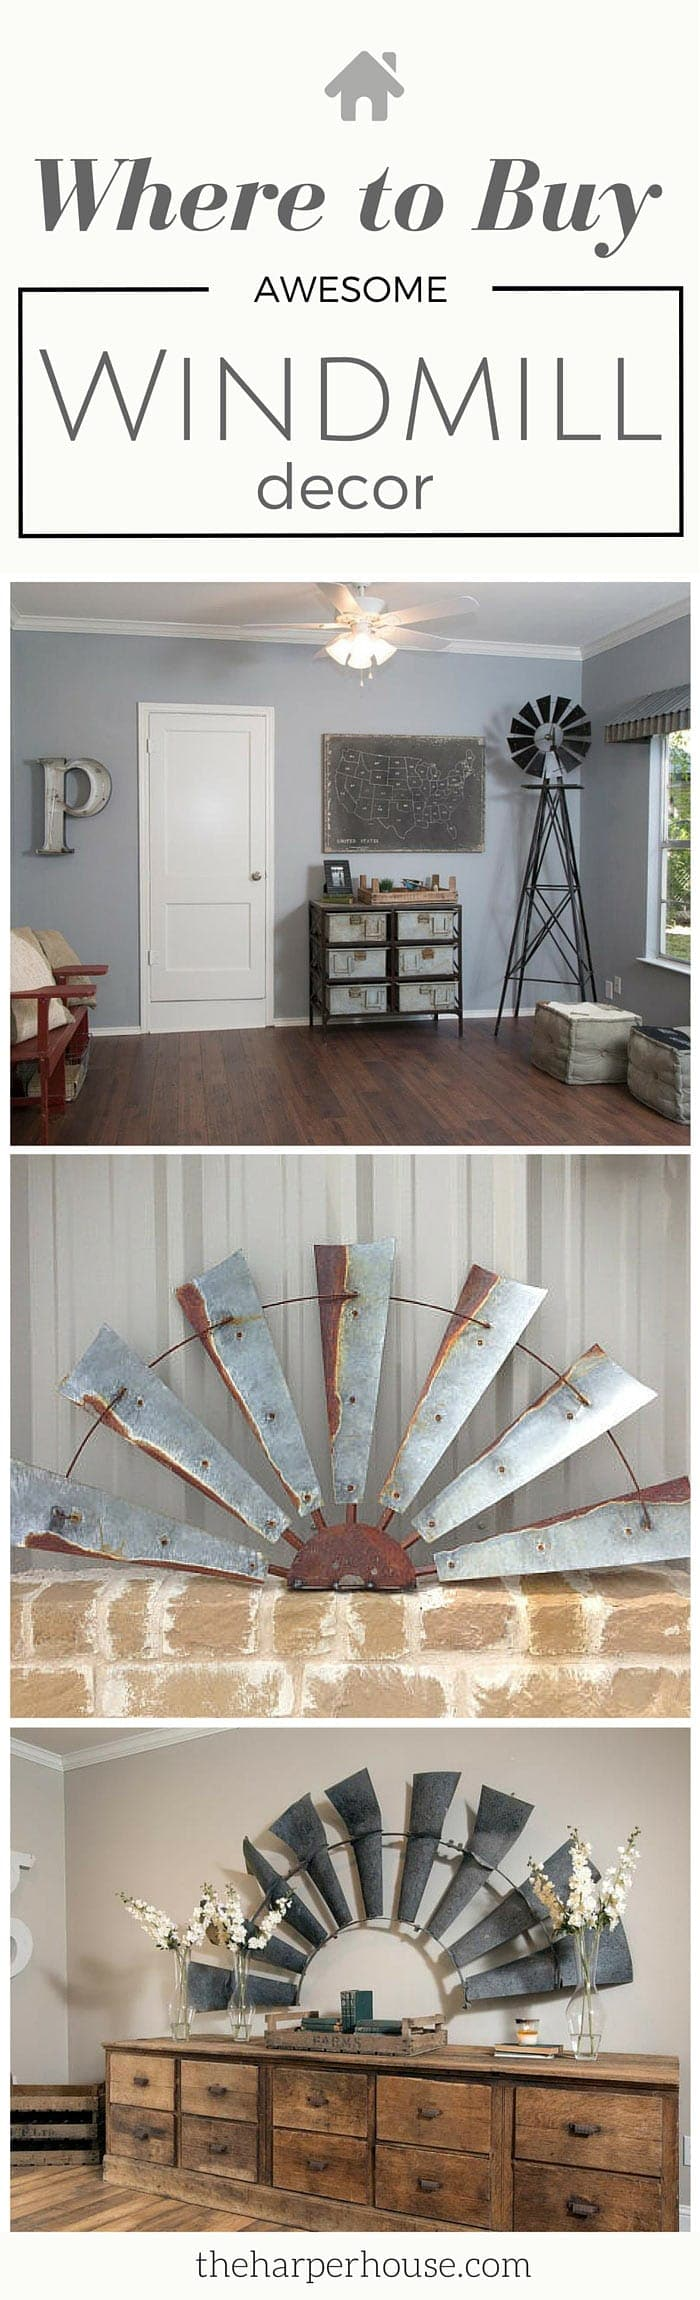 Decorating like joanna gaines - This Is Awesome I Ve Always Wondered Where To Buy Fixer Upper Windmill Decor